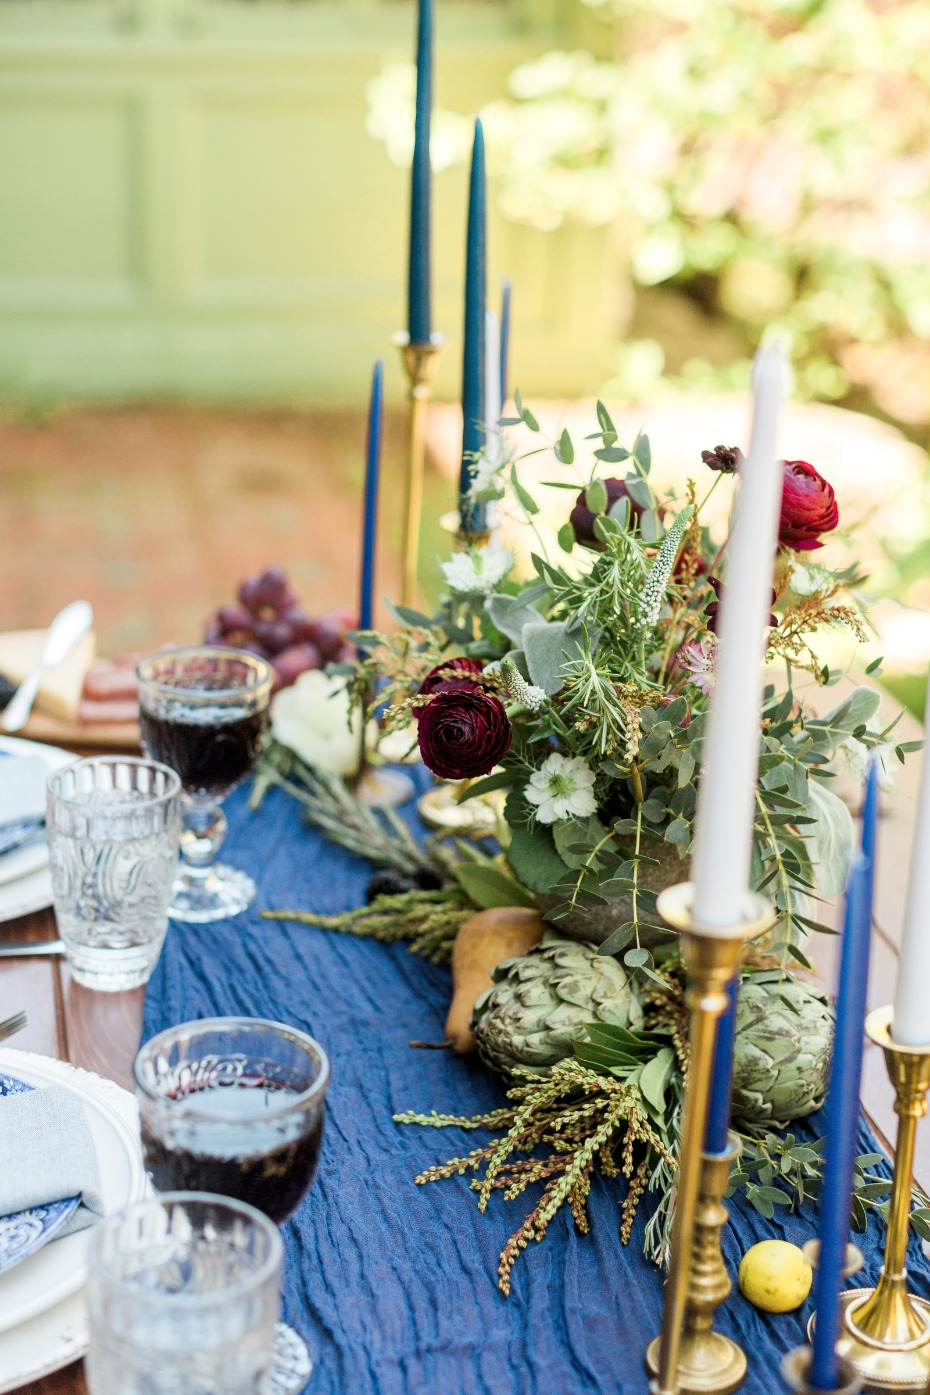 Brass candlesticks and florals